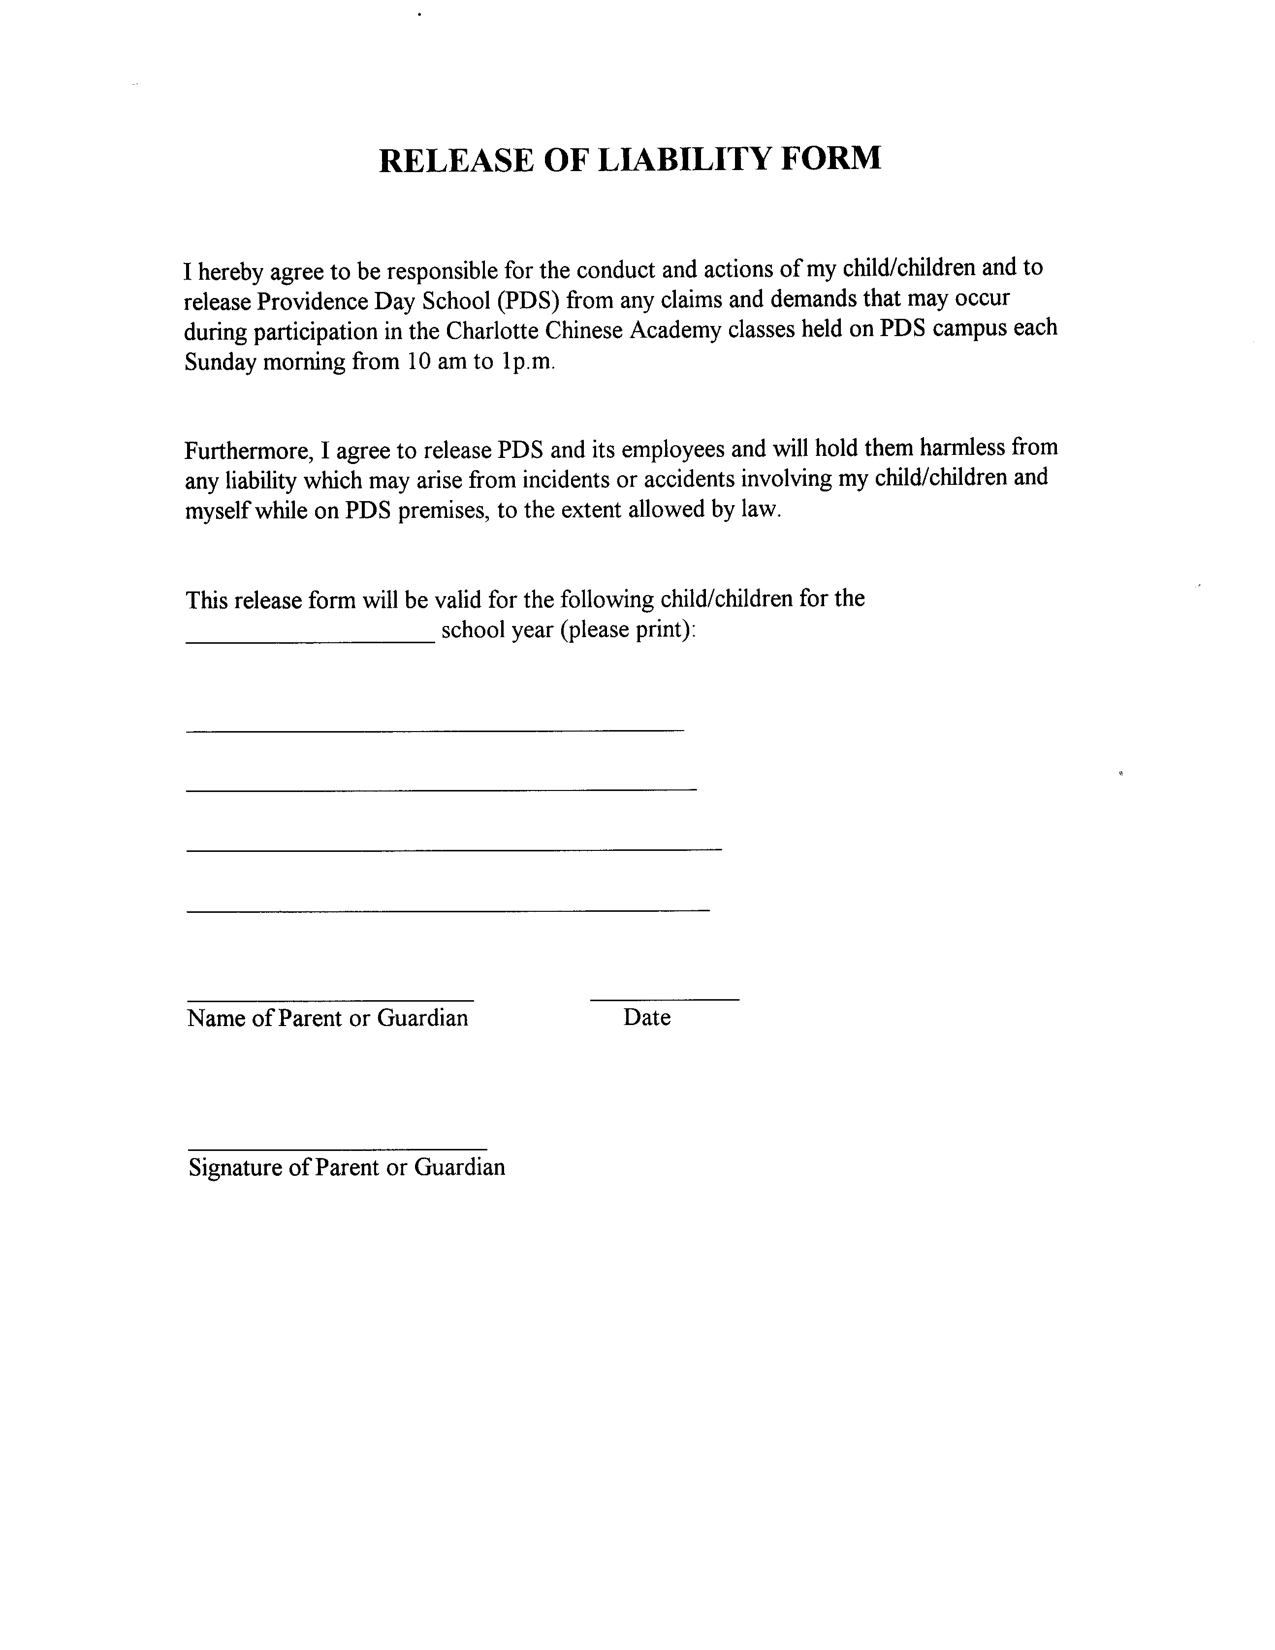 Release From Liability Form Template